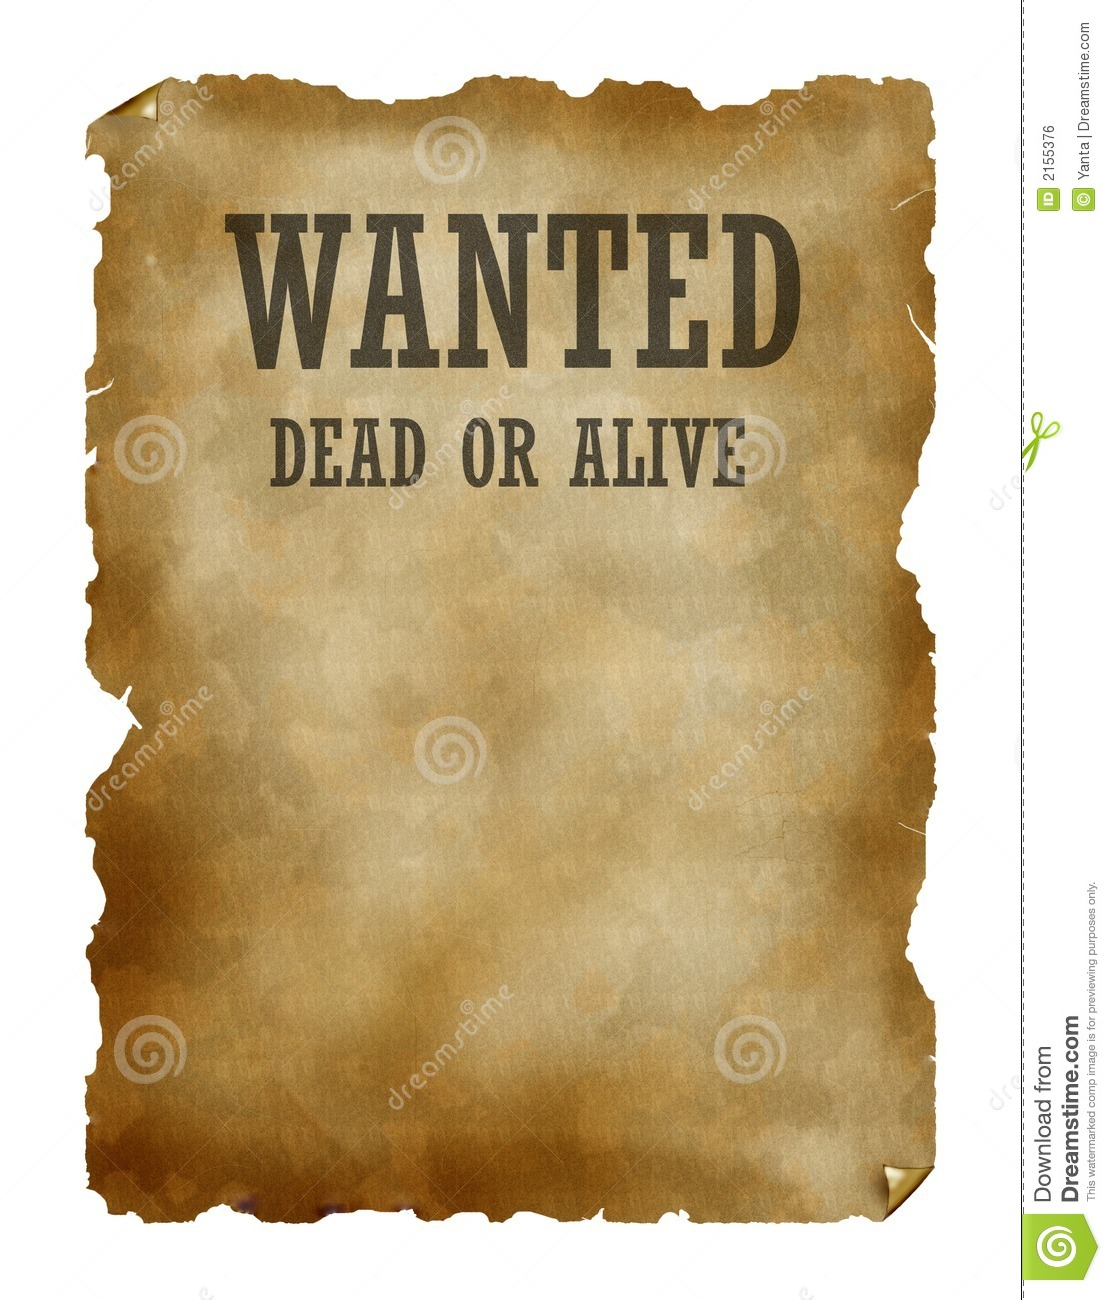 Resume border clipart for Wanted dead or alive poster template free